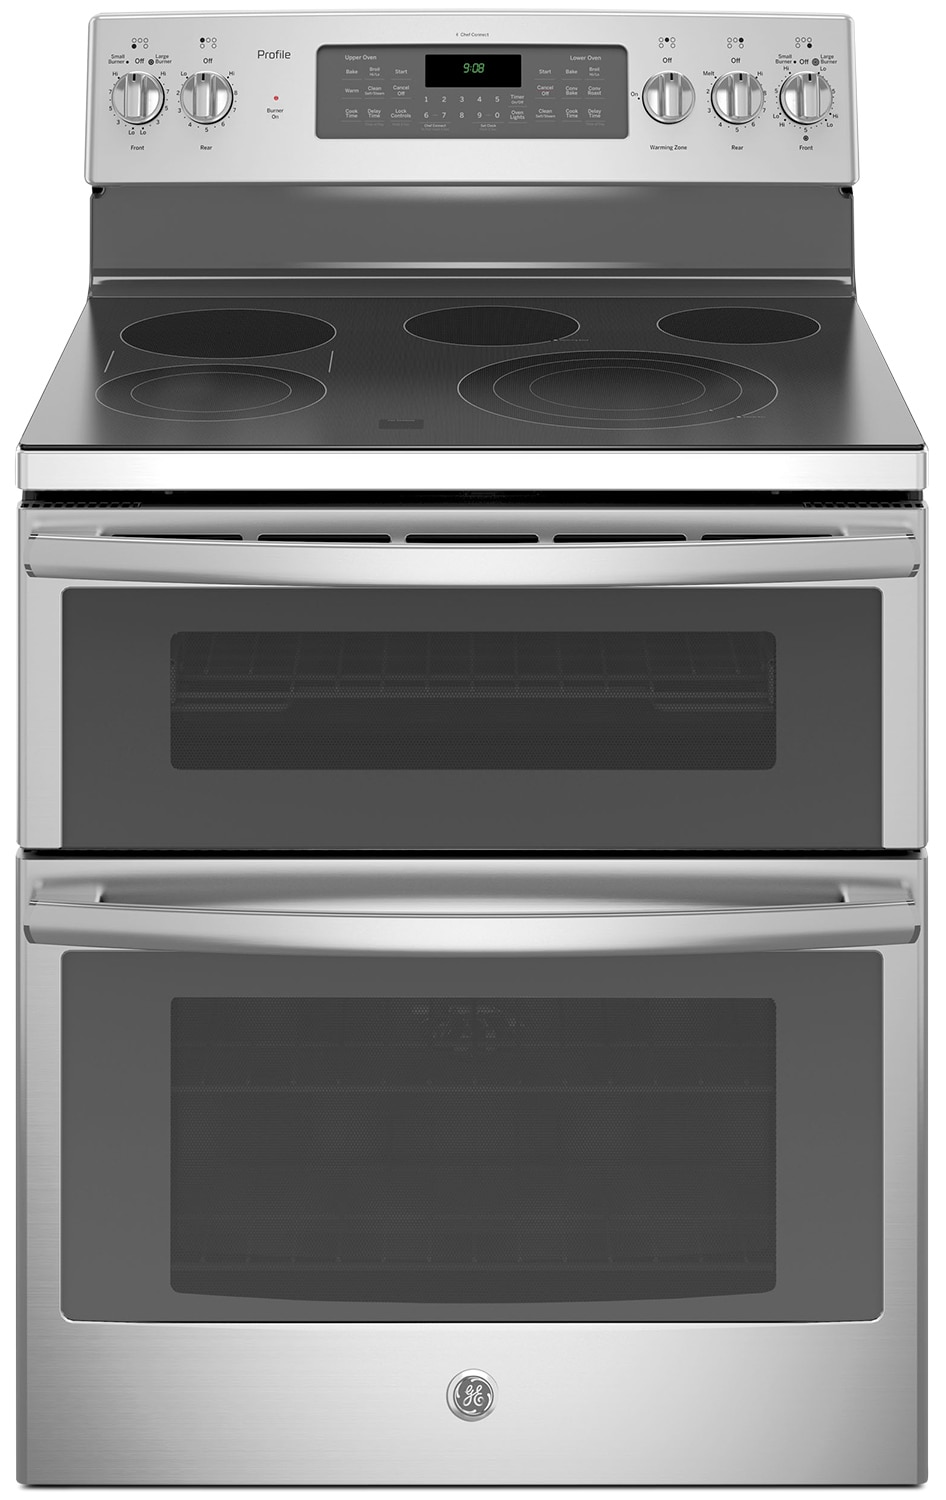 GE 6.6 Cu. Ft. Freestanding Double Oven Self-Cleaning Convection Range – PCB980SJSS